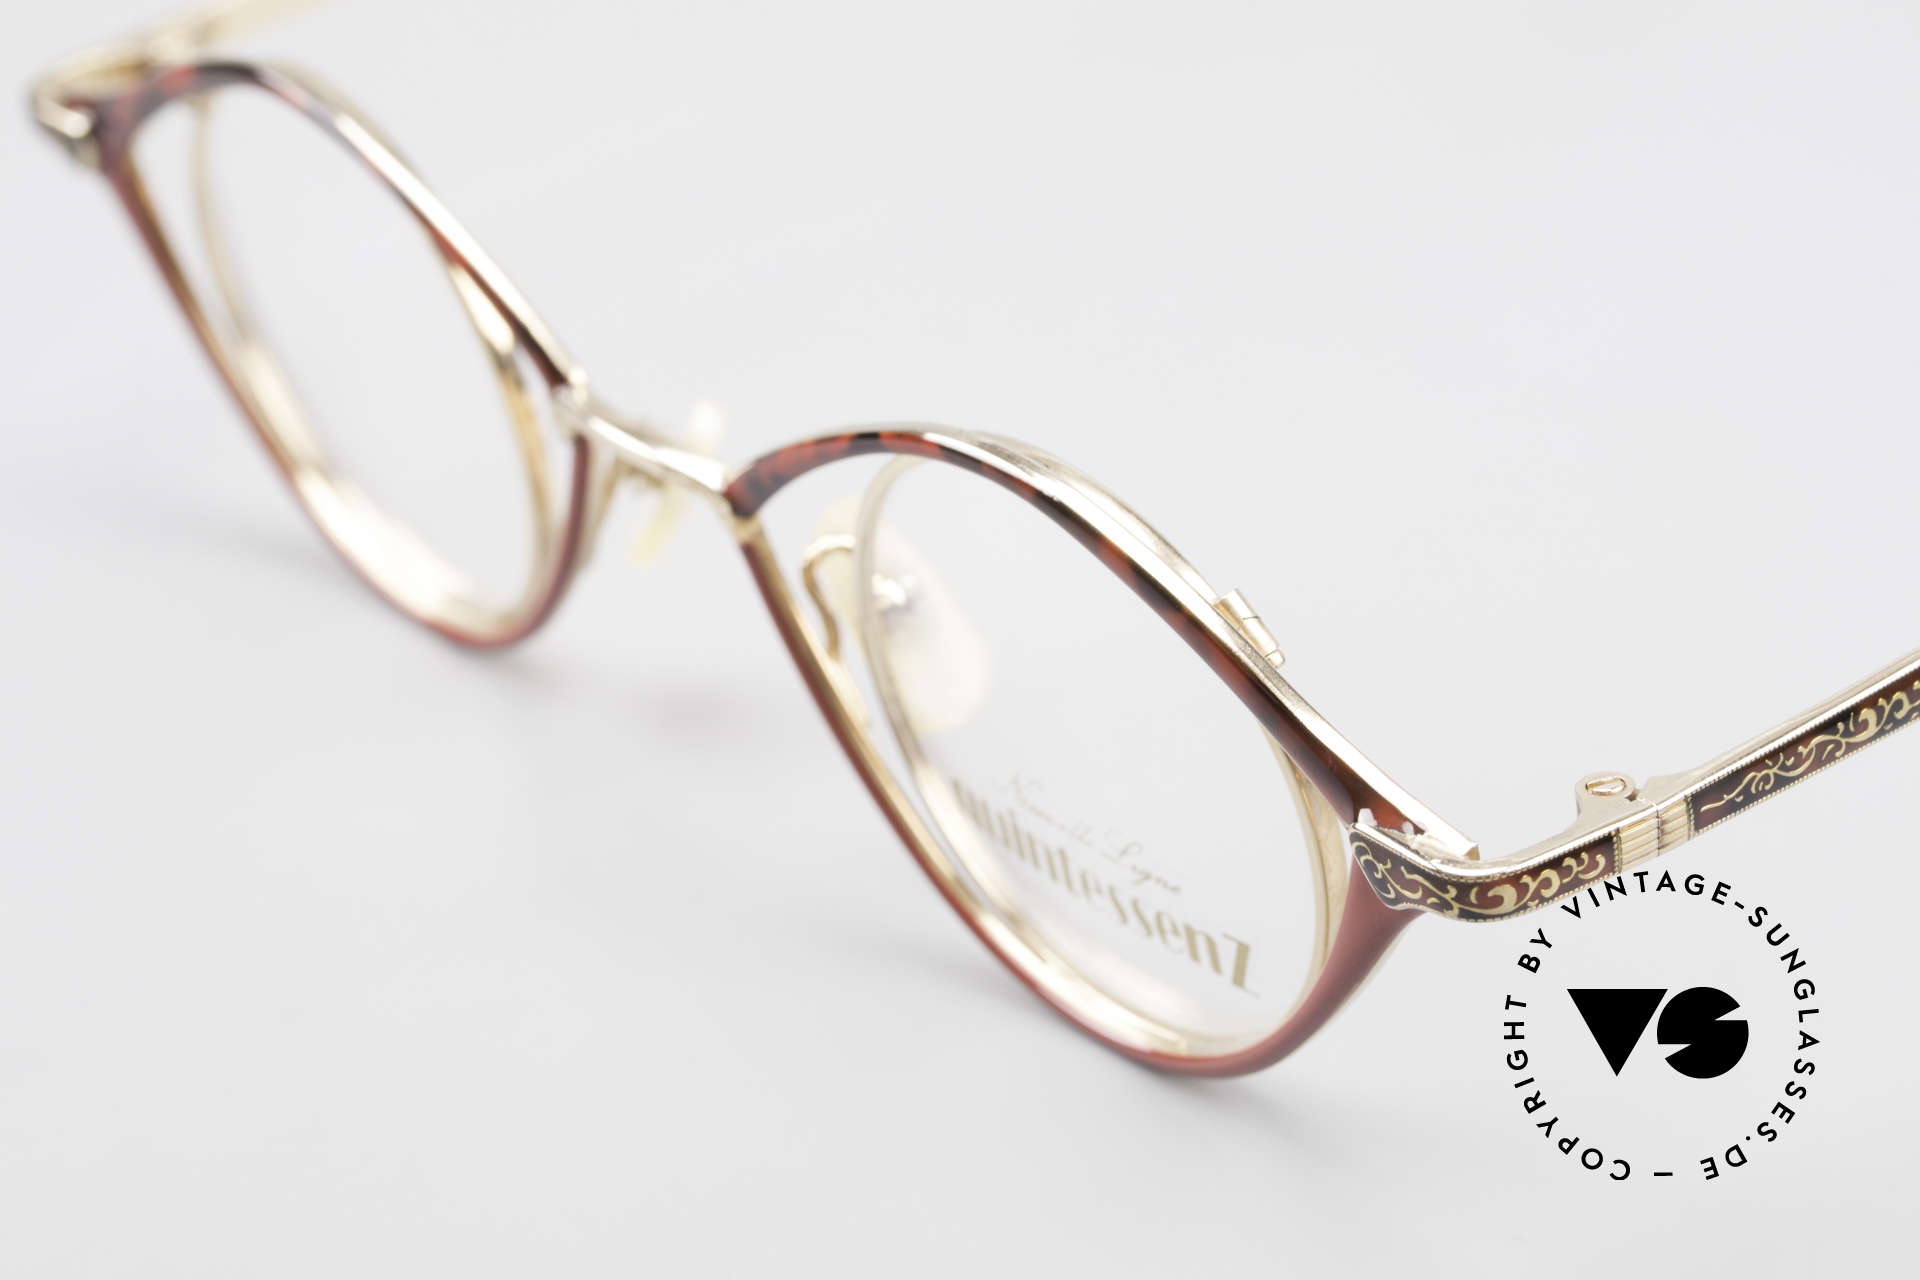 Nouvelle Ligne Q40 Vintage Ladies Specs No Retro, unworn NOS (like all our unique vintage eyewear), Made for Women